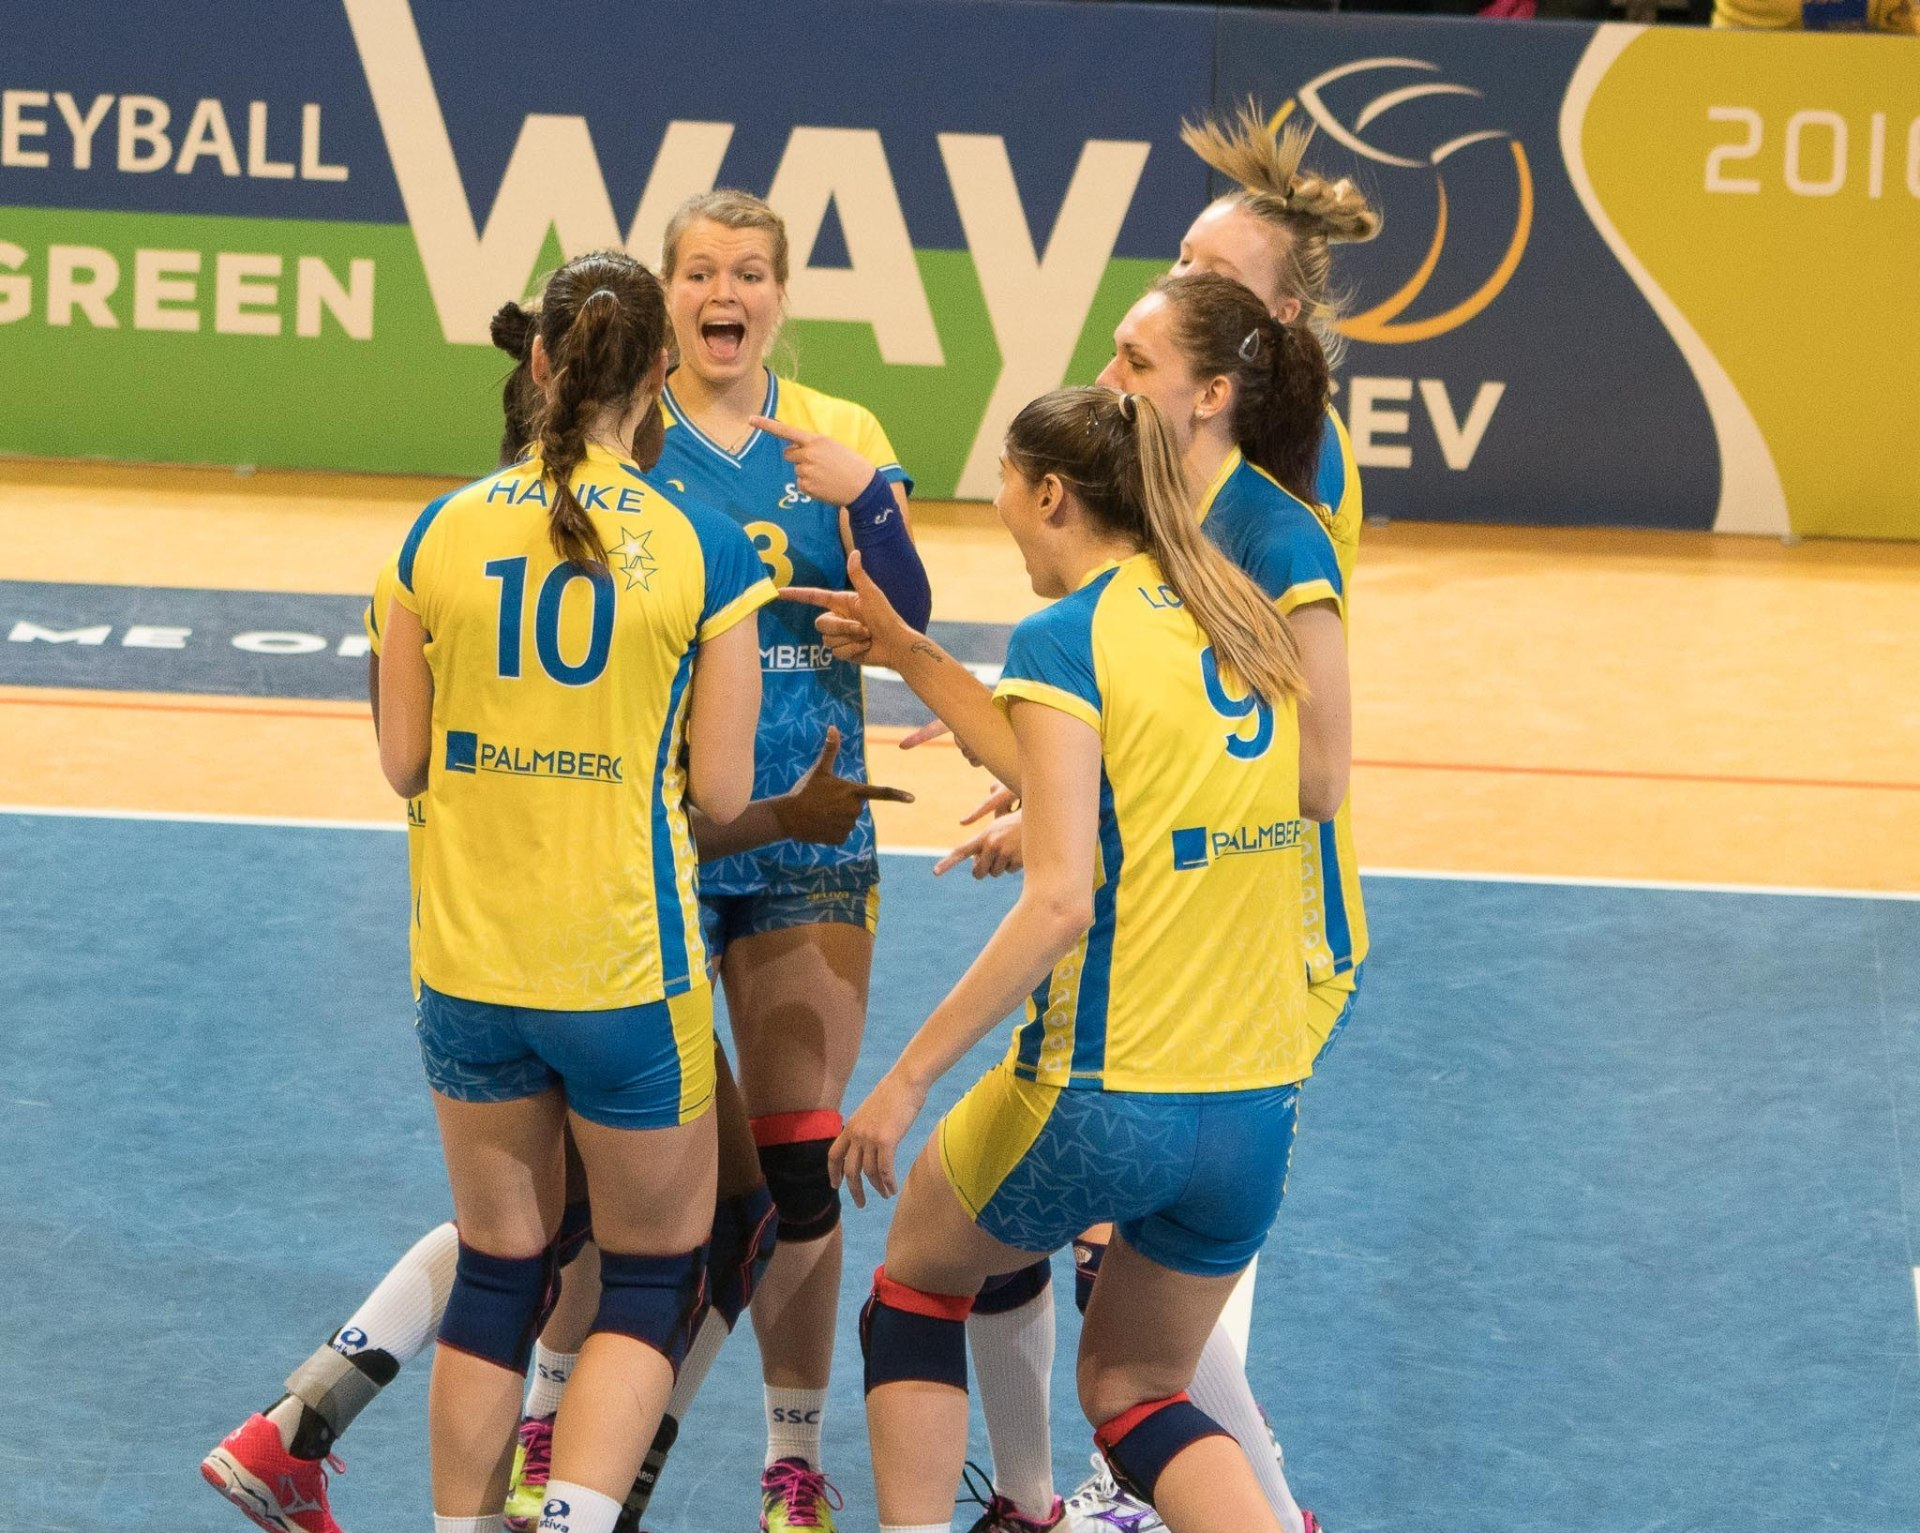 volleyball bundesliga frauen live